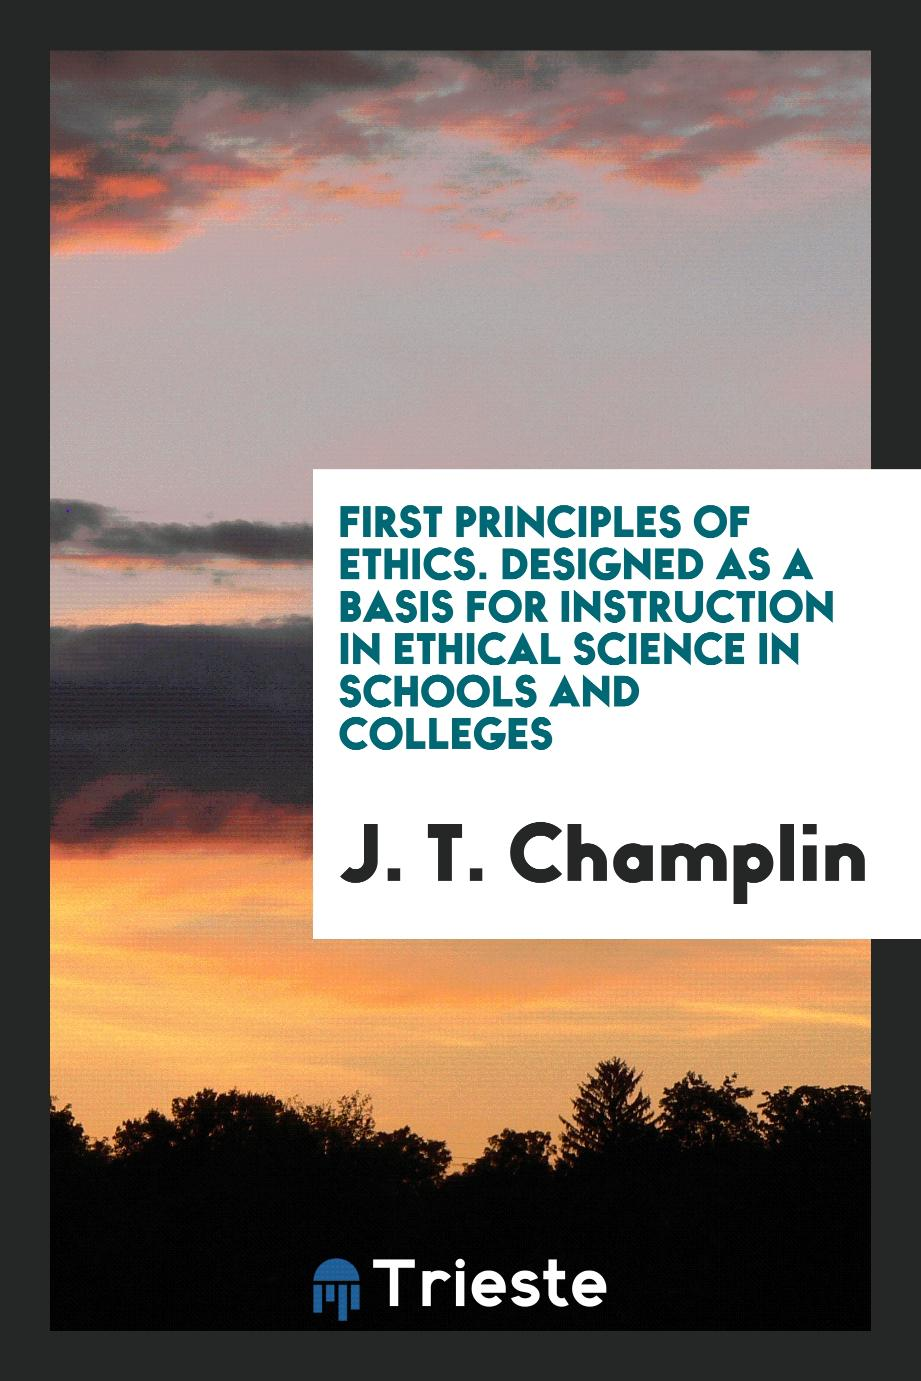 First Principles of Ethics. Designed as a Basis for Instruction in Ethical Science in Schools and Colleges